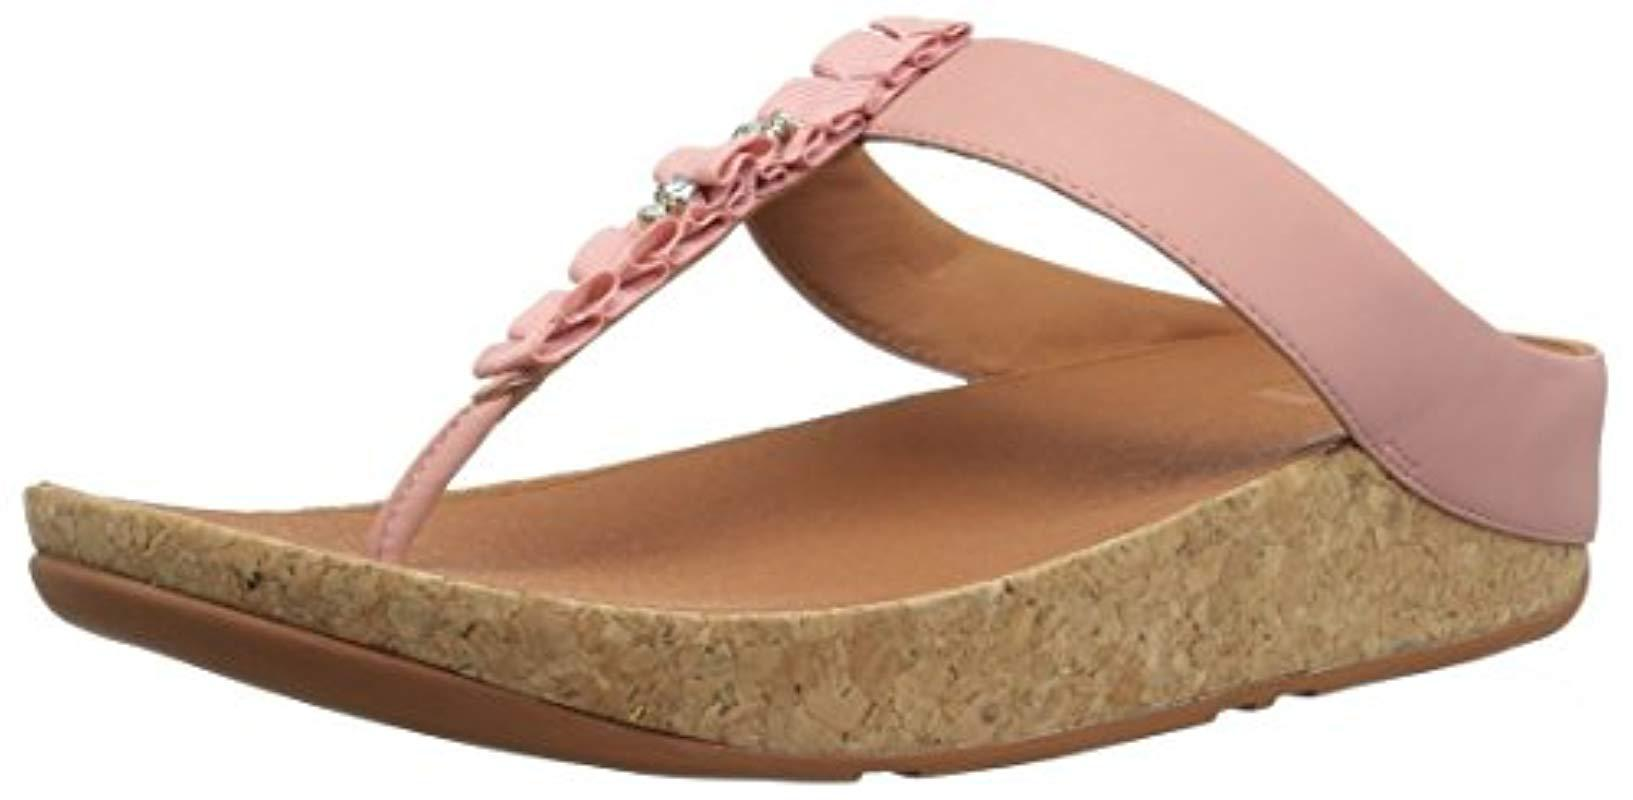 a6df499991de10 Lyst - Fitflop Ruffle Toe-thong Sandal in Pink - Save 4%